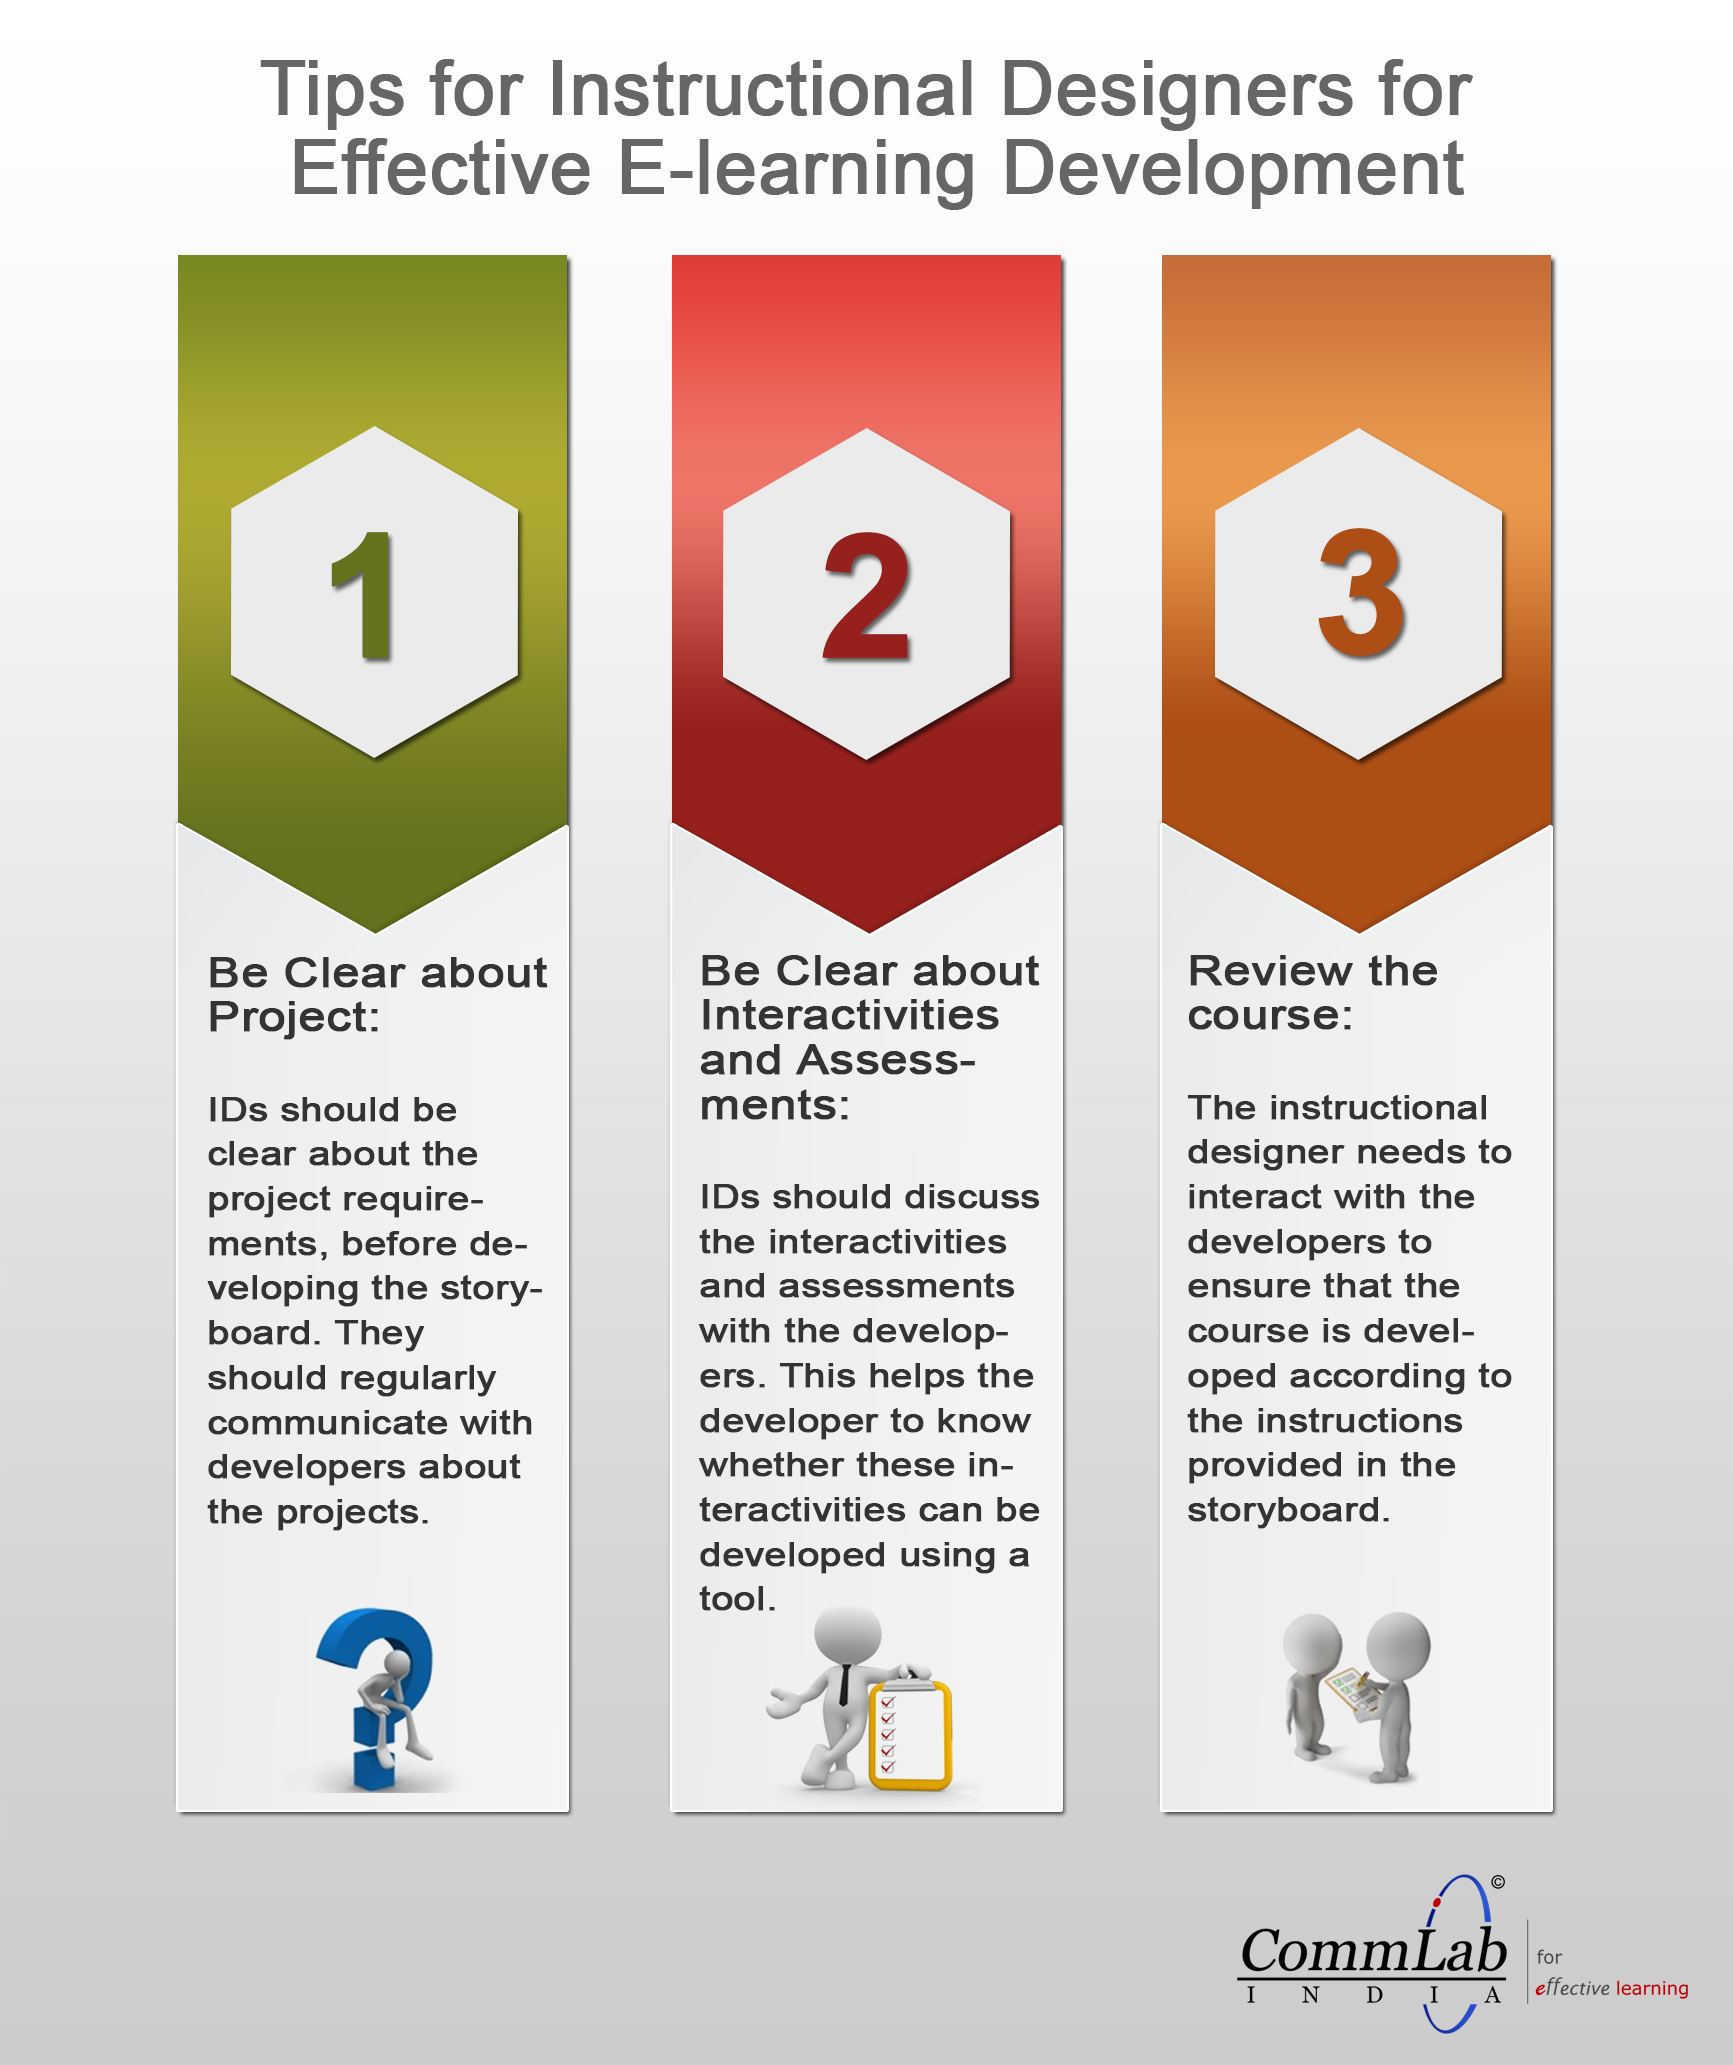 3 Tips to Instructional Designers for Effective E-learning – An Infographic